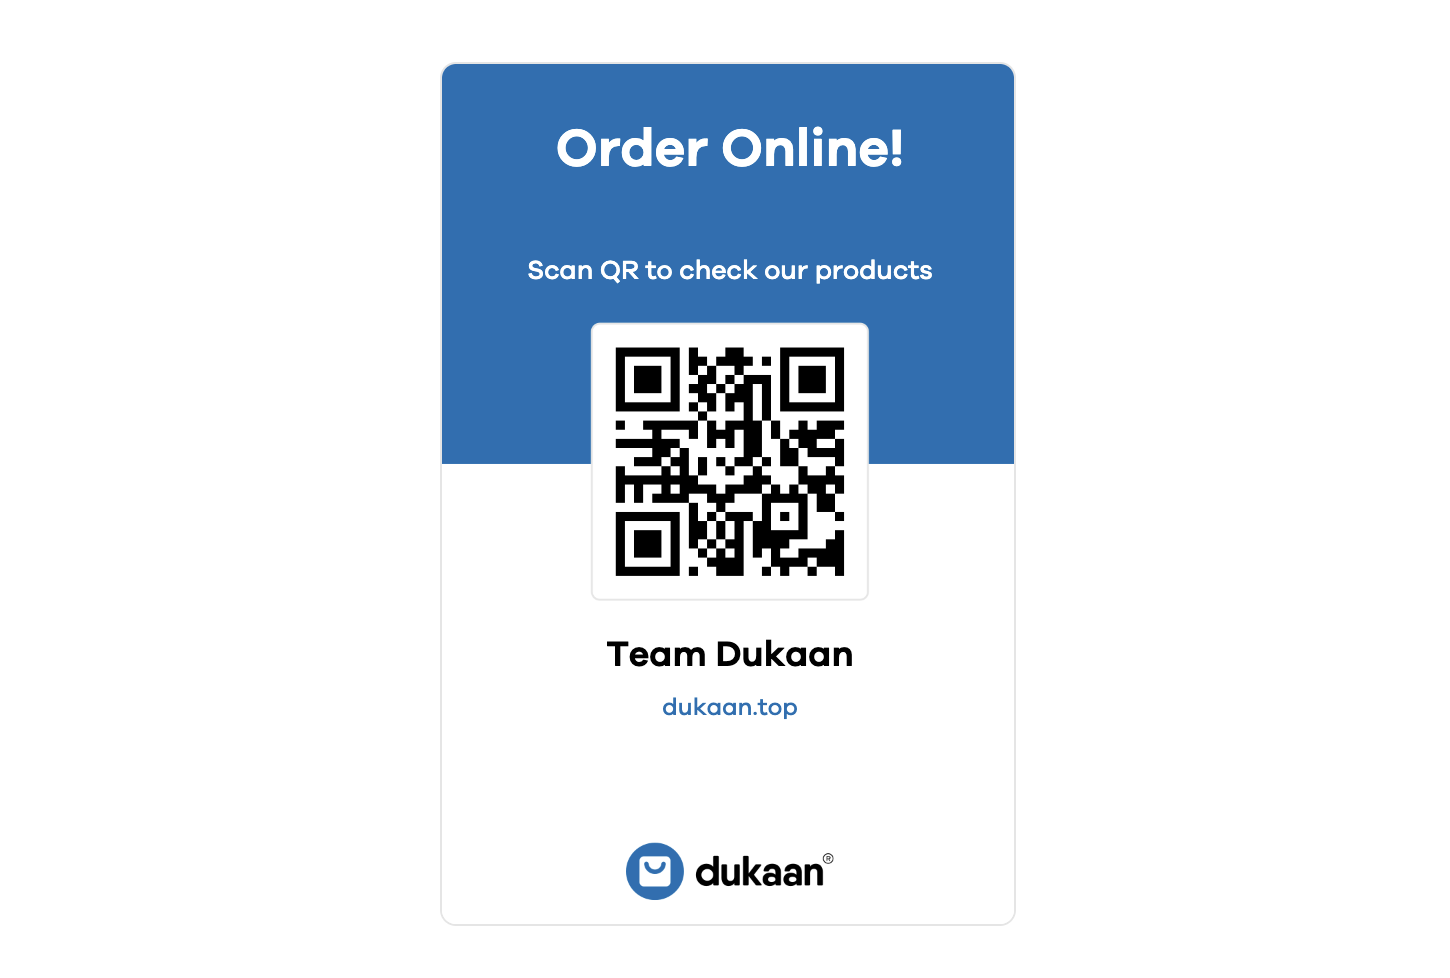 Sales from local events with QR code